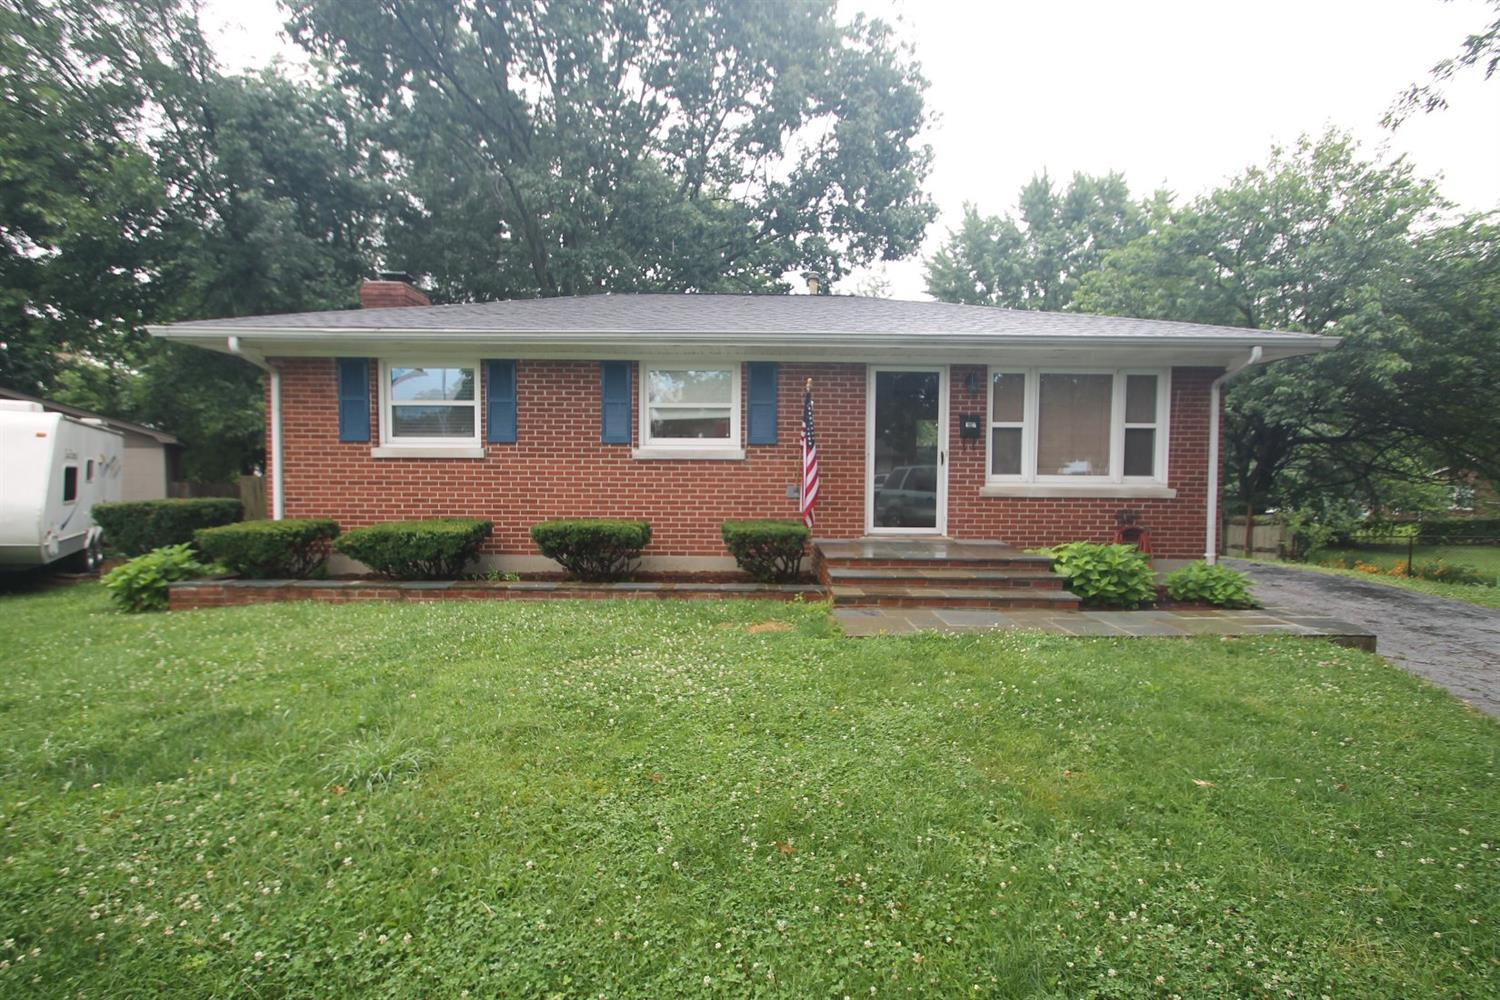 Price%20Reduced,%20Seller%20Motivated!!%20%20Check%20out%20this%20MOVE%20IN%20READY,%20Ranch%20on%20a%20Basement!%20%20This%20all%20brick%20home%20is%20located%20in%20a%20cul-de-sac%20in%20a%20quiet,%20well%20established%20neighborhood,%20with%20schools%20and%20parks%20nearby.%20%20There%20is%20a%20HUGE%20yard%20for%20kids%20and%20pets%20to%20play!%20%20Great%20Starter%20home%20for%20any%20first%20time%20buyer%20and%20a%20great%20home%20for%20someone%20looking%20to%20downsize!%20%20Don't%20miss%20out%20on%20this%20great%20house!